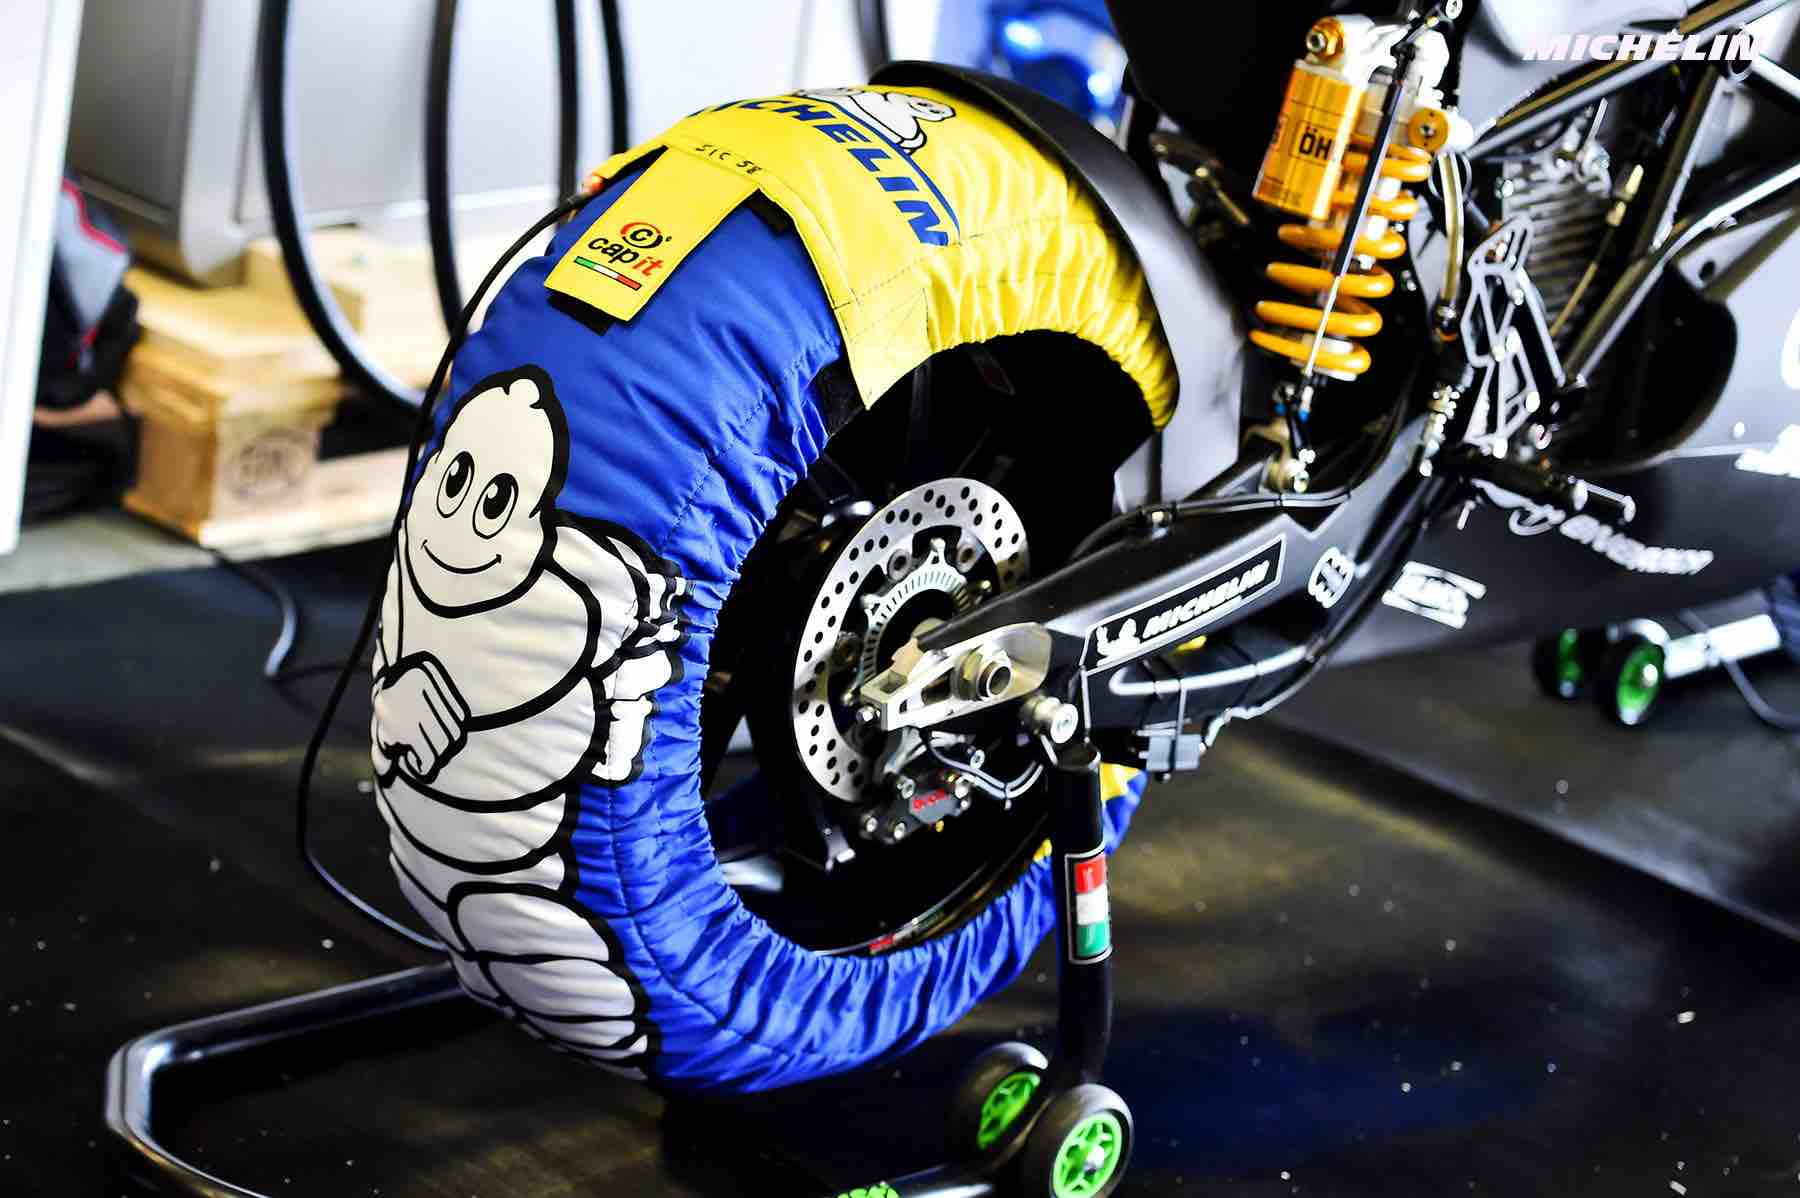 Divers tires Test Jerez 2018 (Circuit Jerez) 23-24.11.2018 photo: MICHELIN